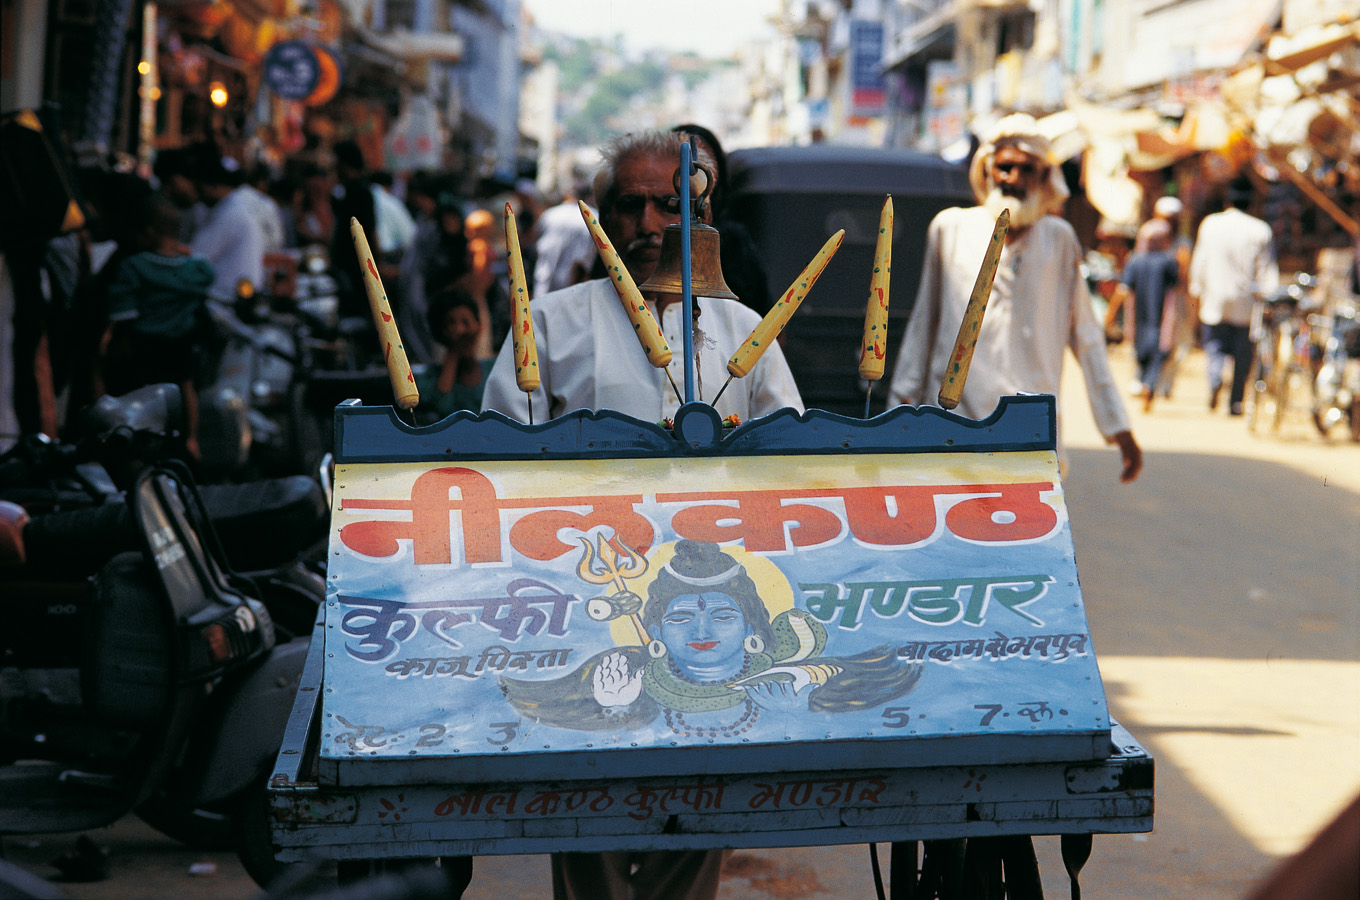 """A vendor selling milk ice-cream. The text reads 'Blue Throat. Milk ice-cream depot; cashew pistacio, filled with almonds; 2, 3, 5, 7 rupees.' """"Blue Throat"""" is another name for Lord Shiva who turned blue because he consumed lethal poison, symbolised by the naga around his neck, to save the world. Photo: Ajmer, India"""